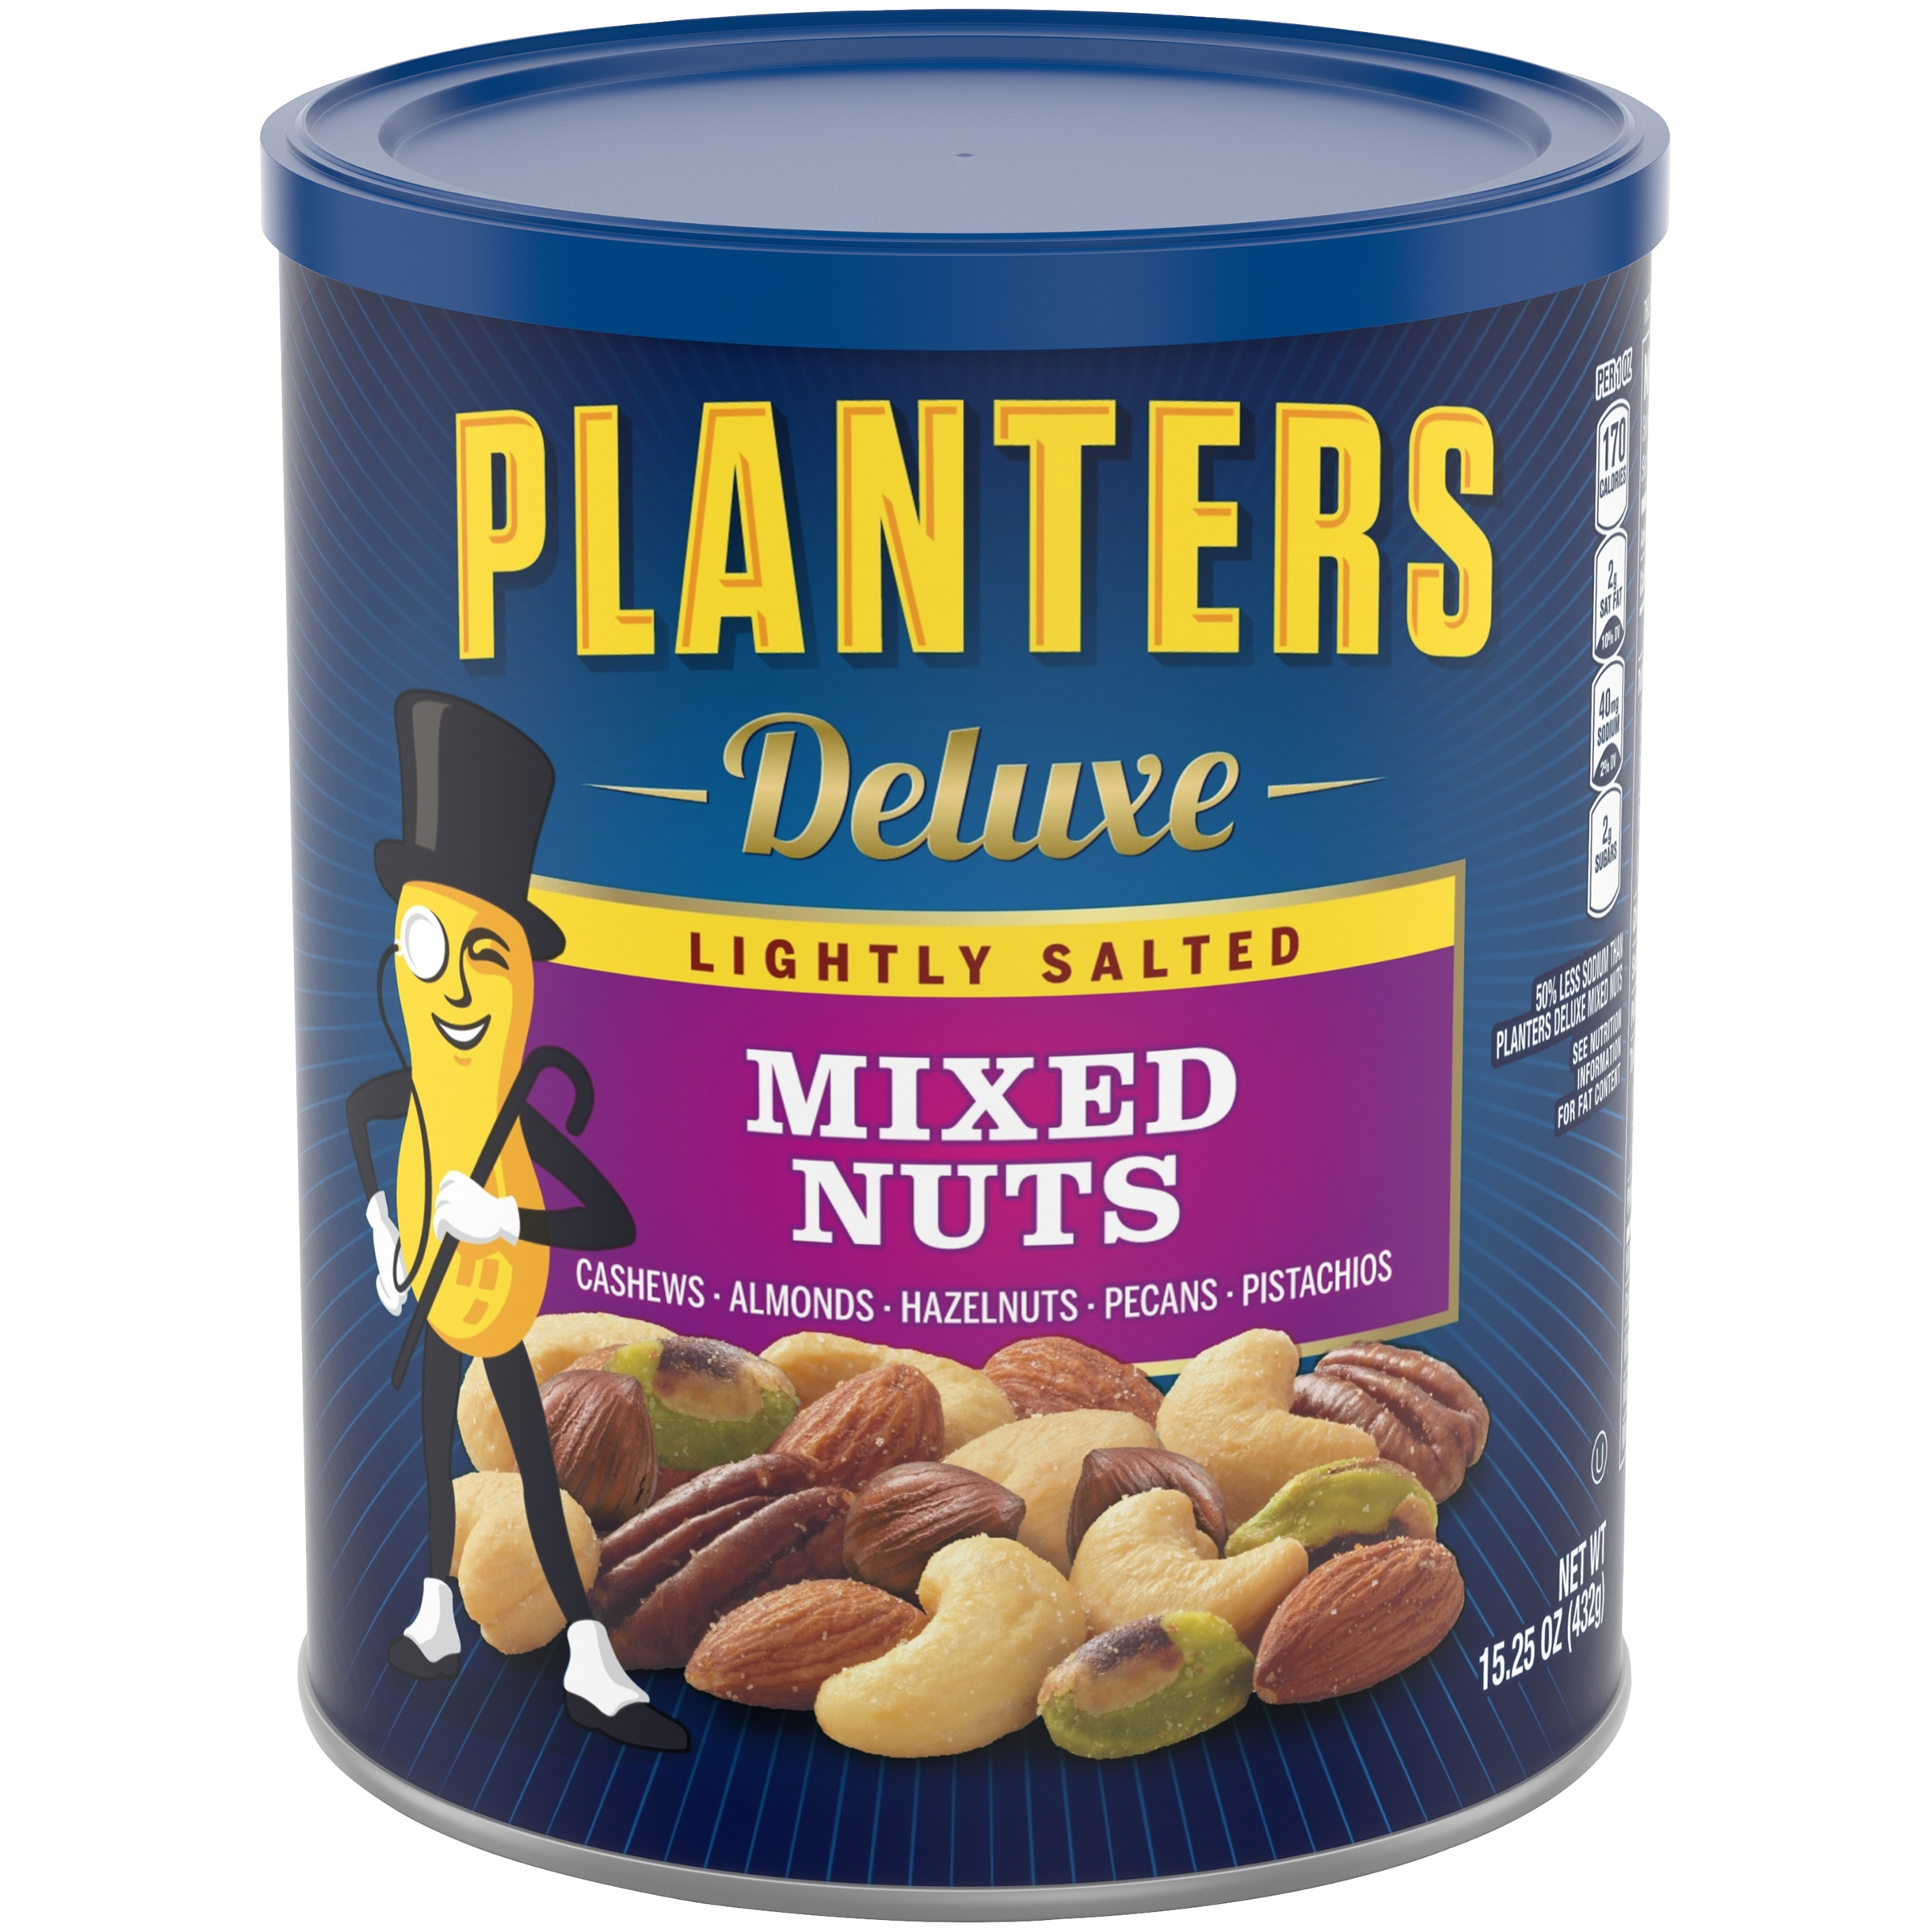 Planters Deluxe Lightly Salted Mixed Nuts 15.25 oz. Canister